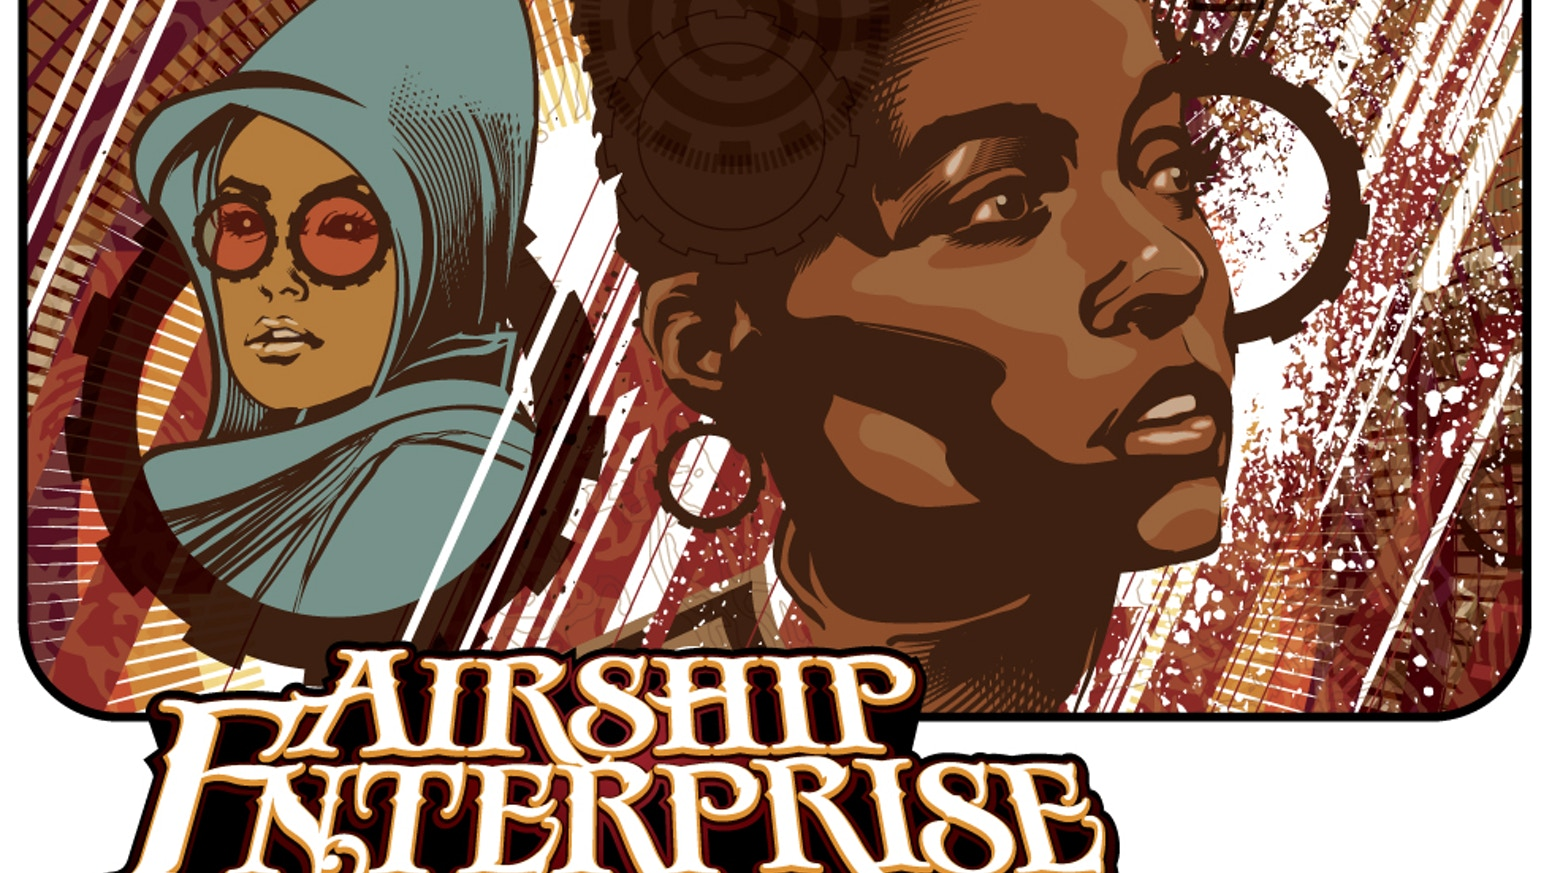 Airship enterprise ogn vol 1 by brian denham and joeming dunn captain janus tibbs enterprise battle an air kraken fueled by hate by brian denham malvernweather